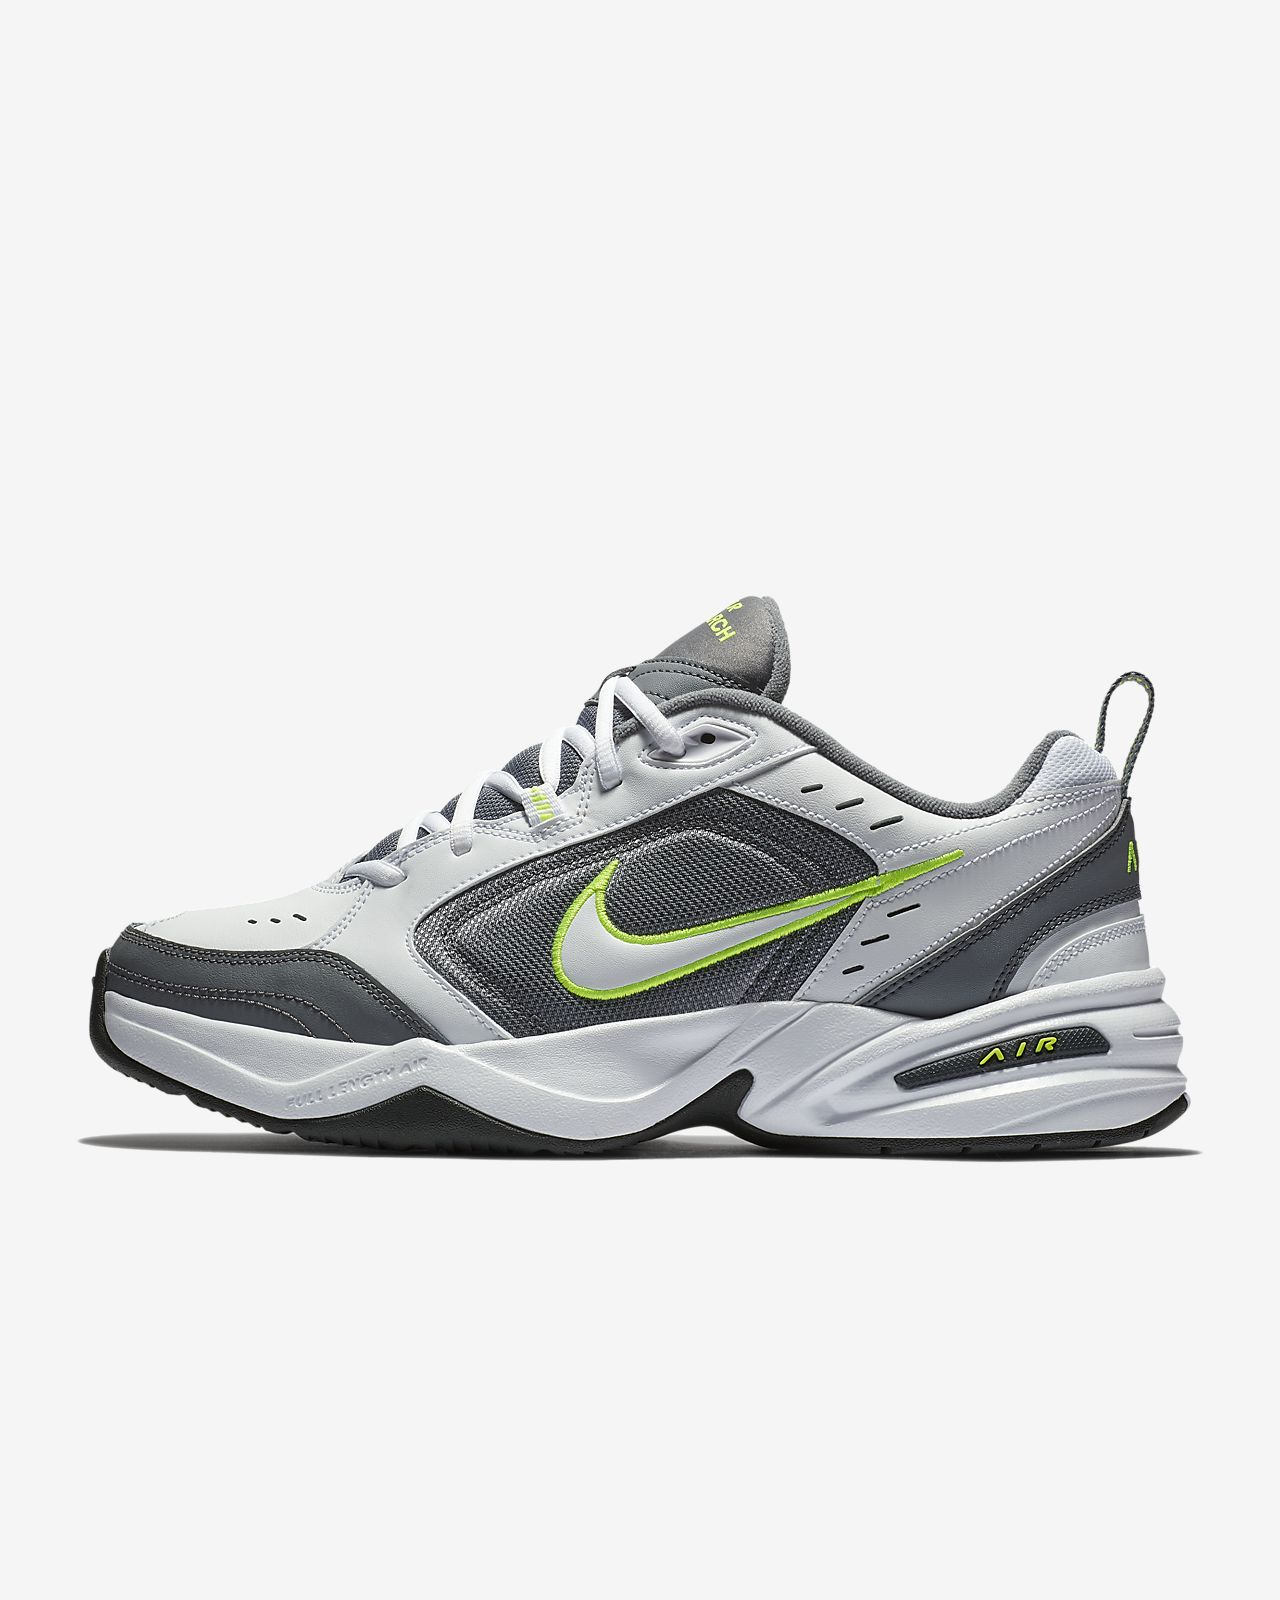 c0ea34cf66a Nike Air Monarch IV Lifestyle Gym Shoe. Nike.com